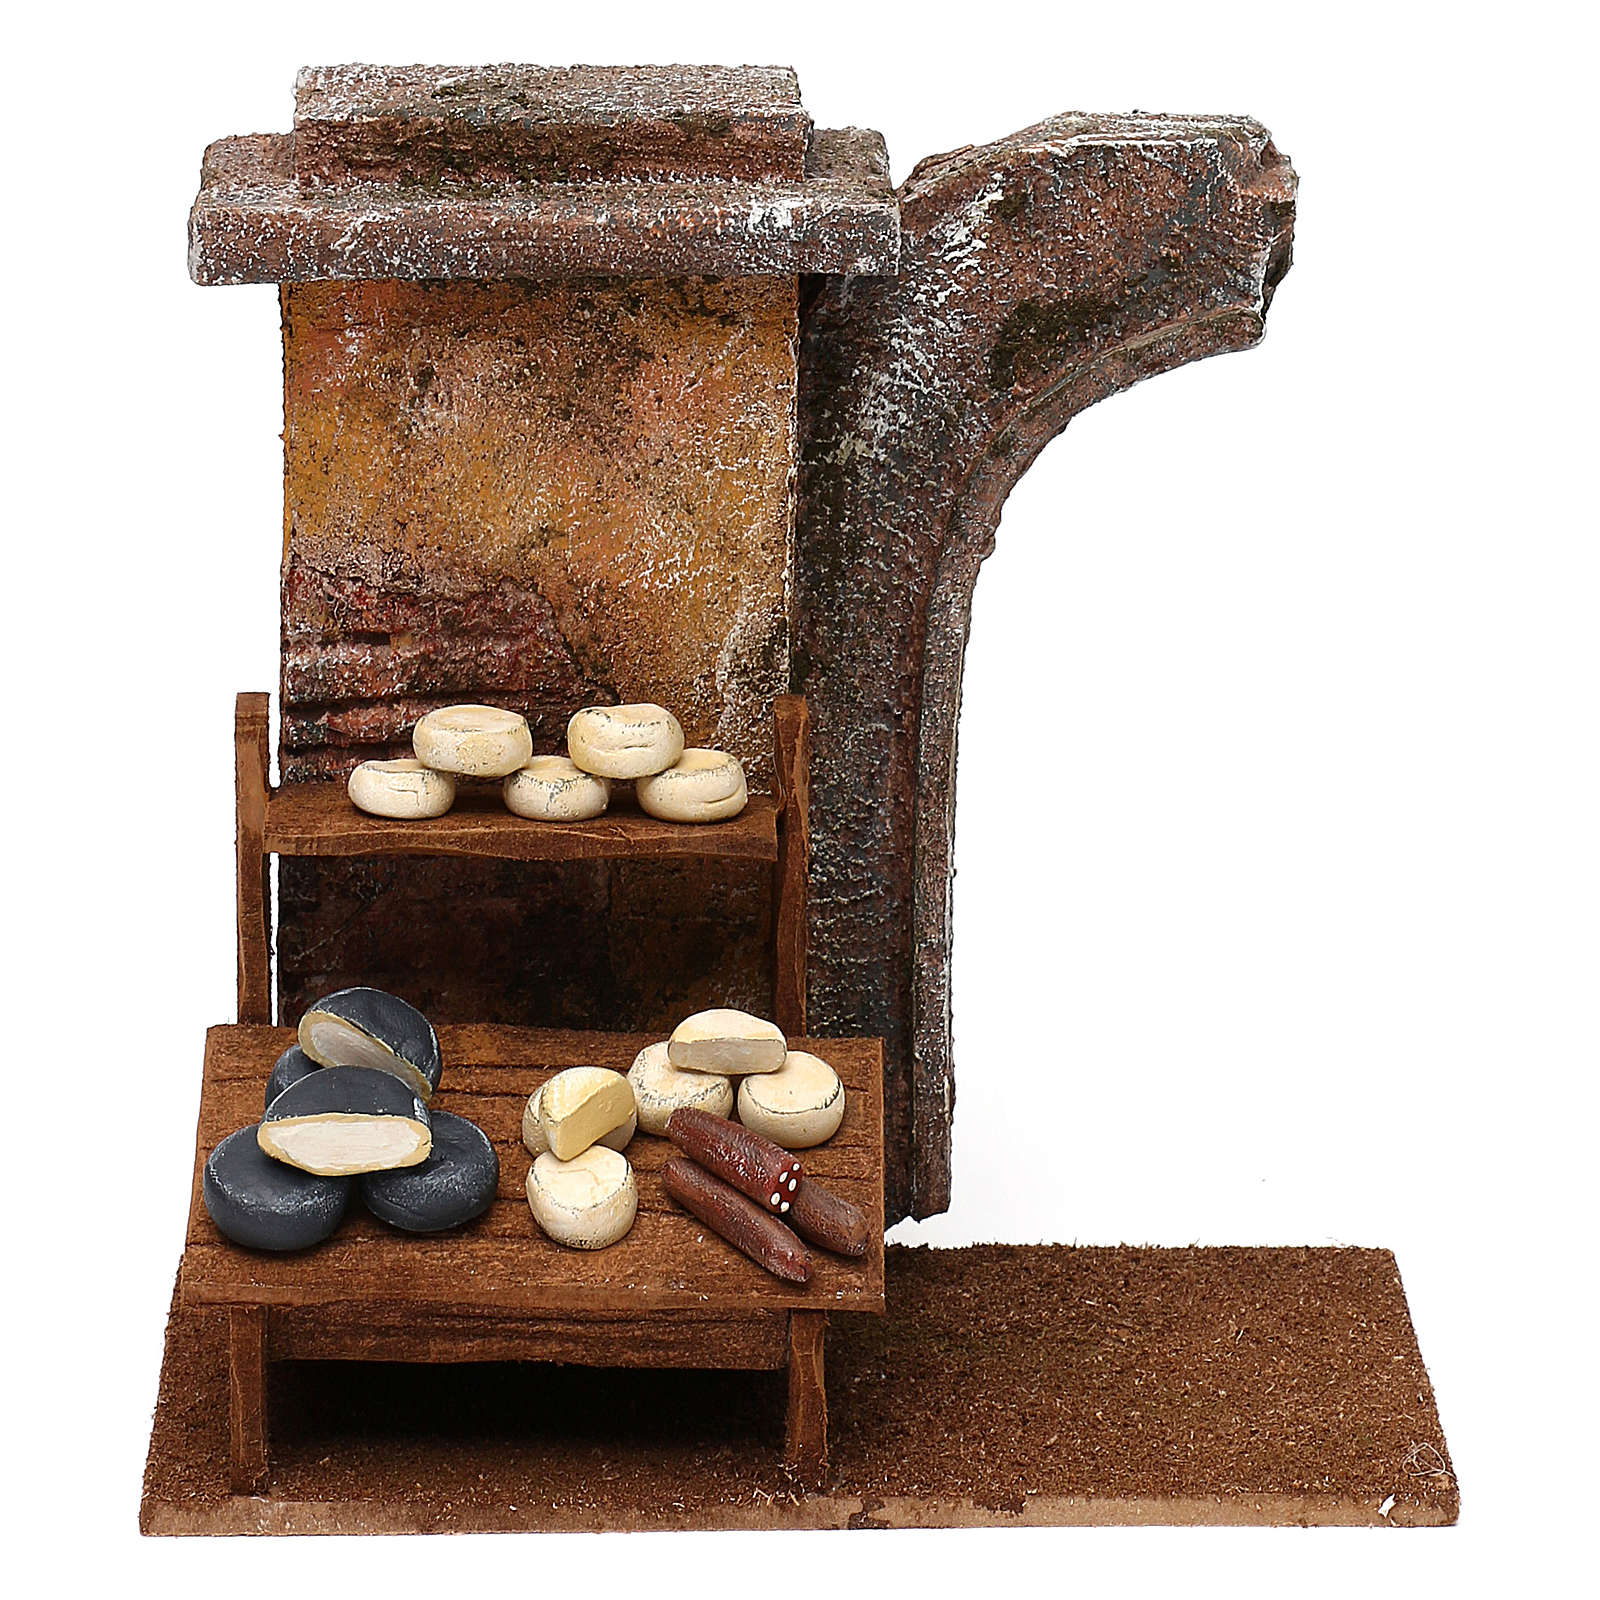 Cheese seller setting for 12 cm Nativity scene, 20x25x10 cm 4